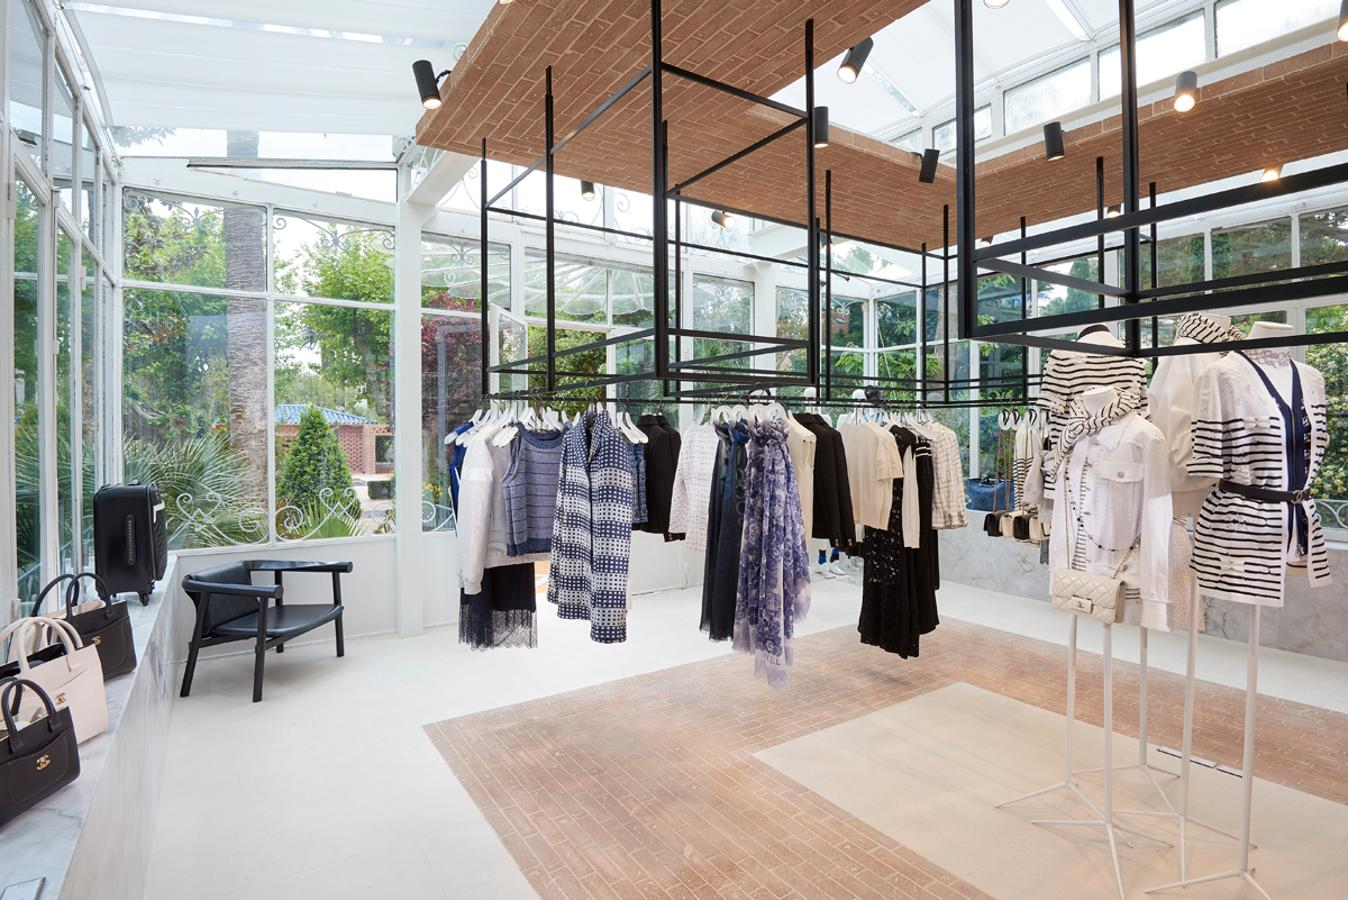 Chanel-pop-up-store.jpg